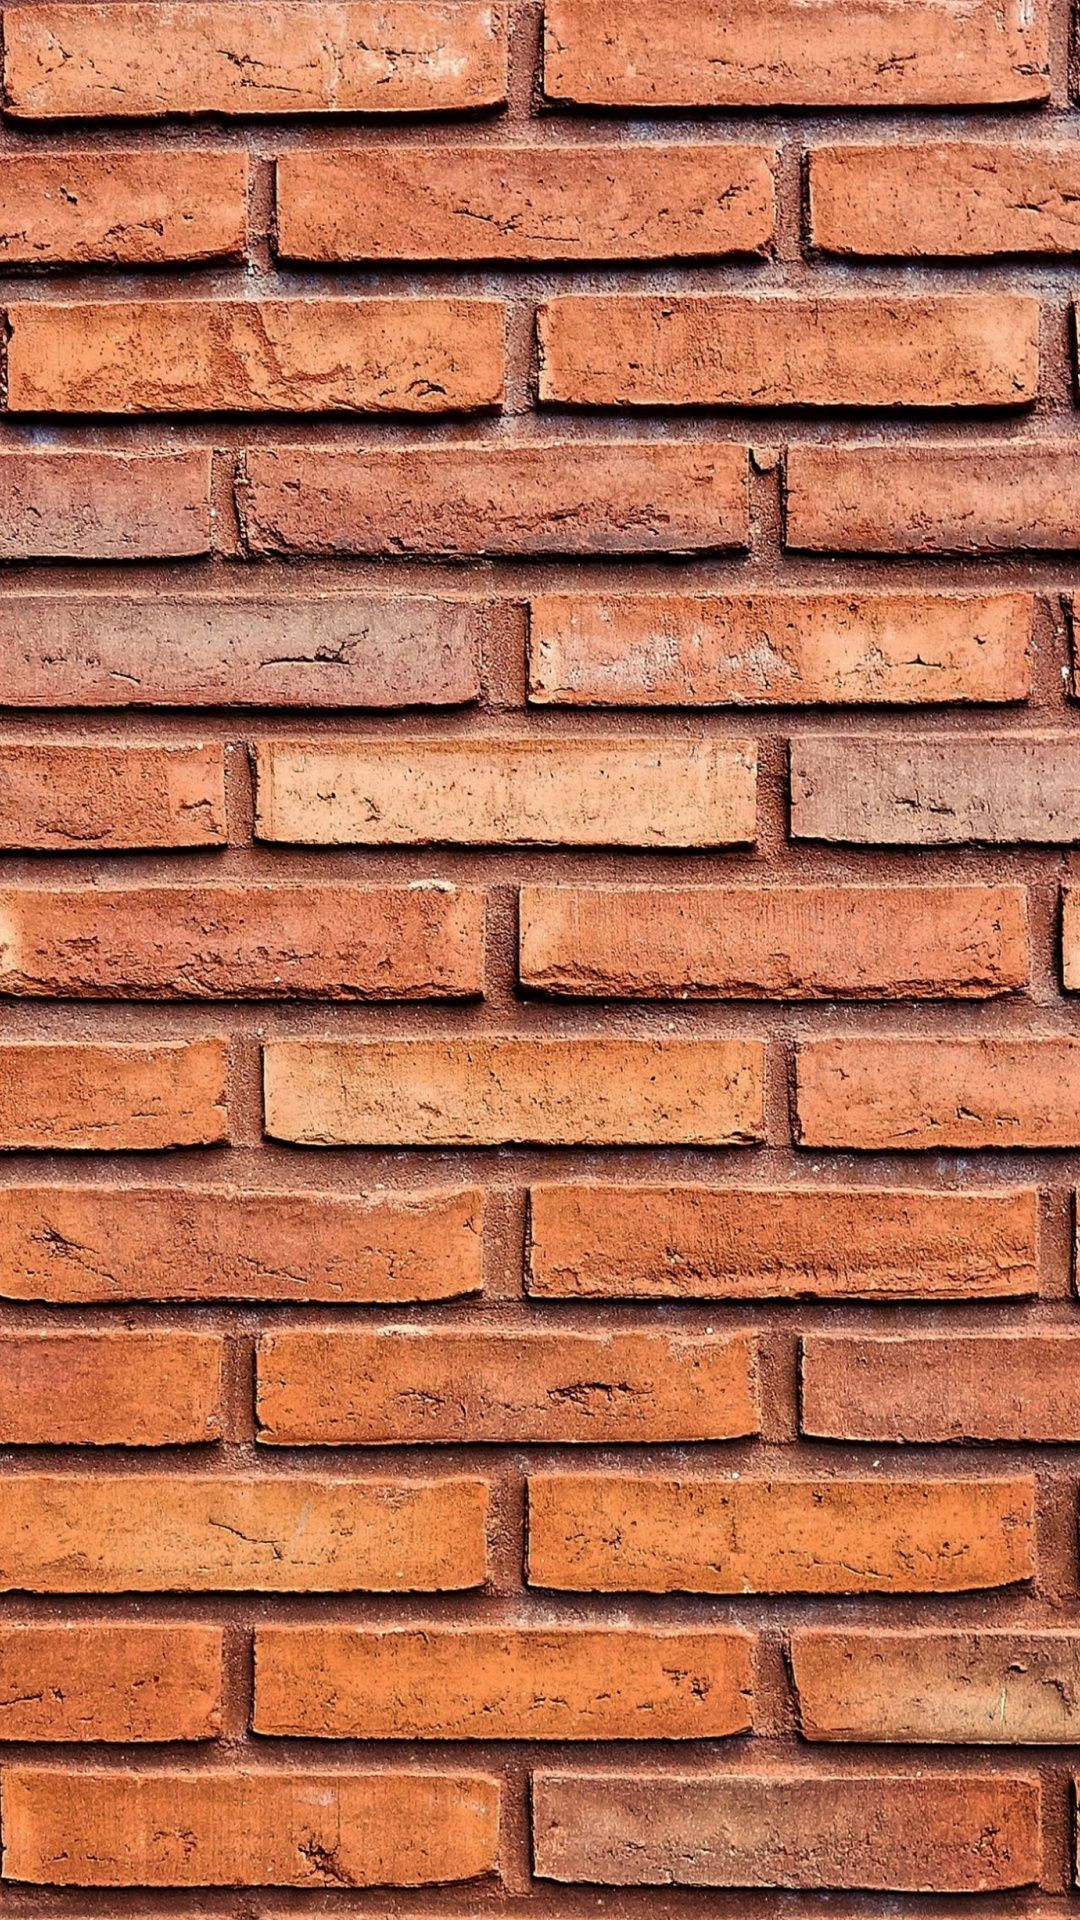 Brick Background Hd Wallpaper Hupages Download Iphone